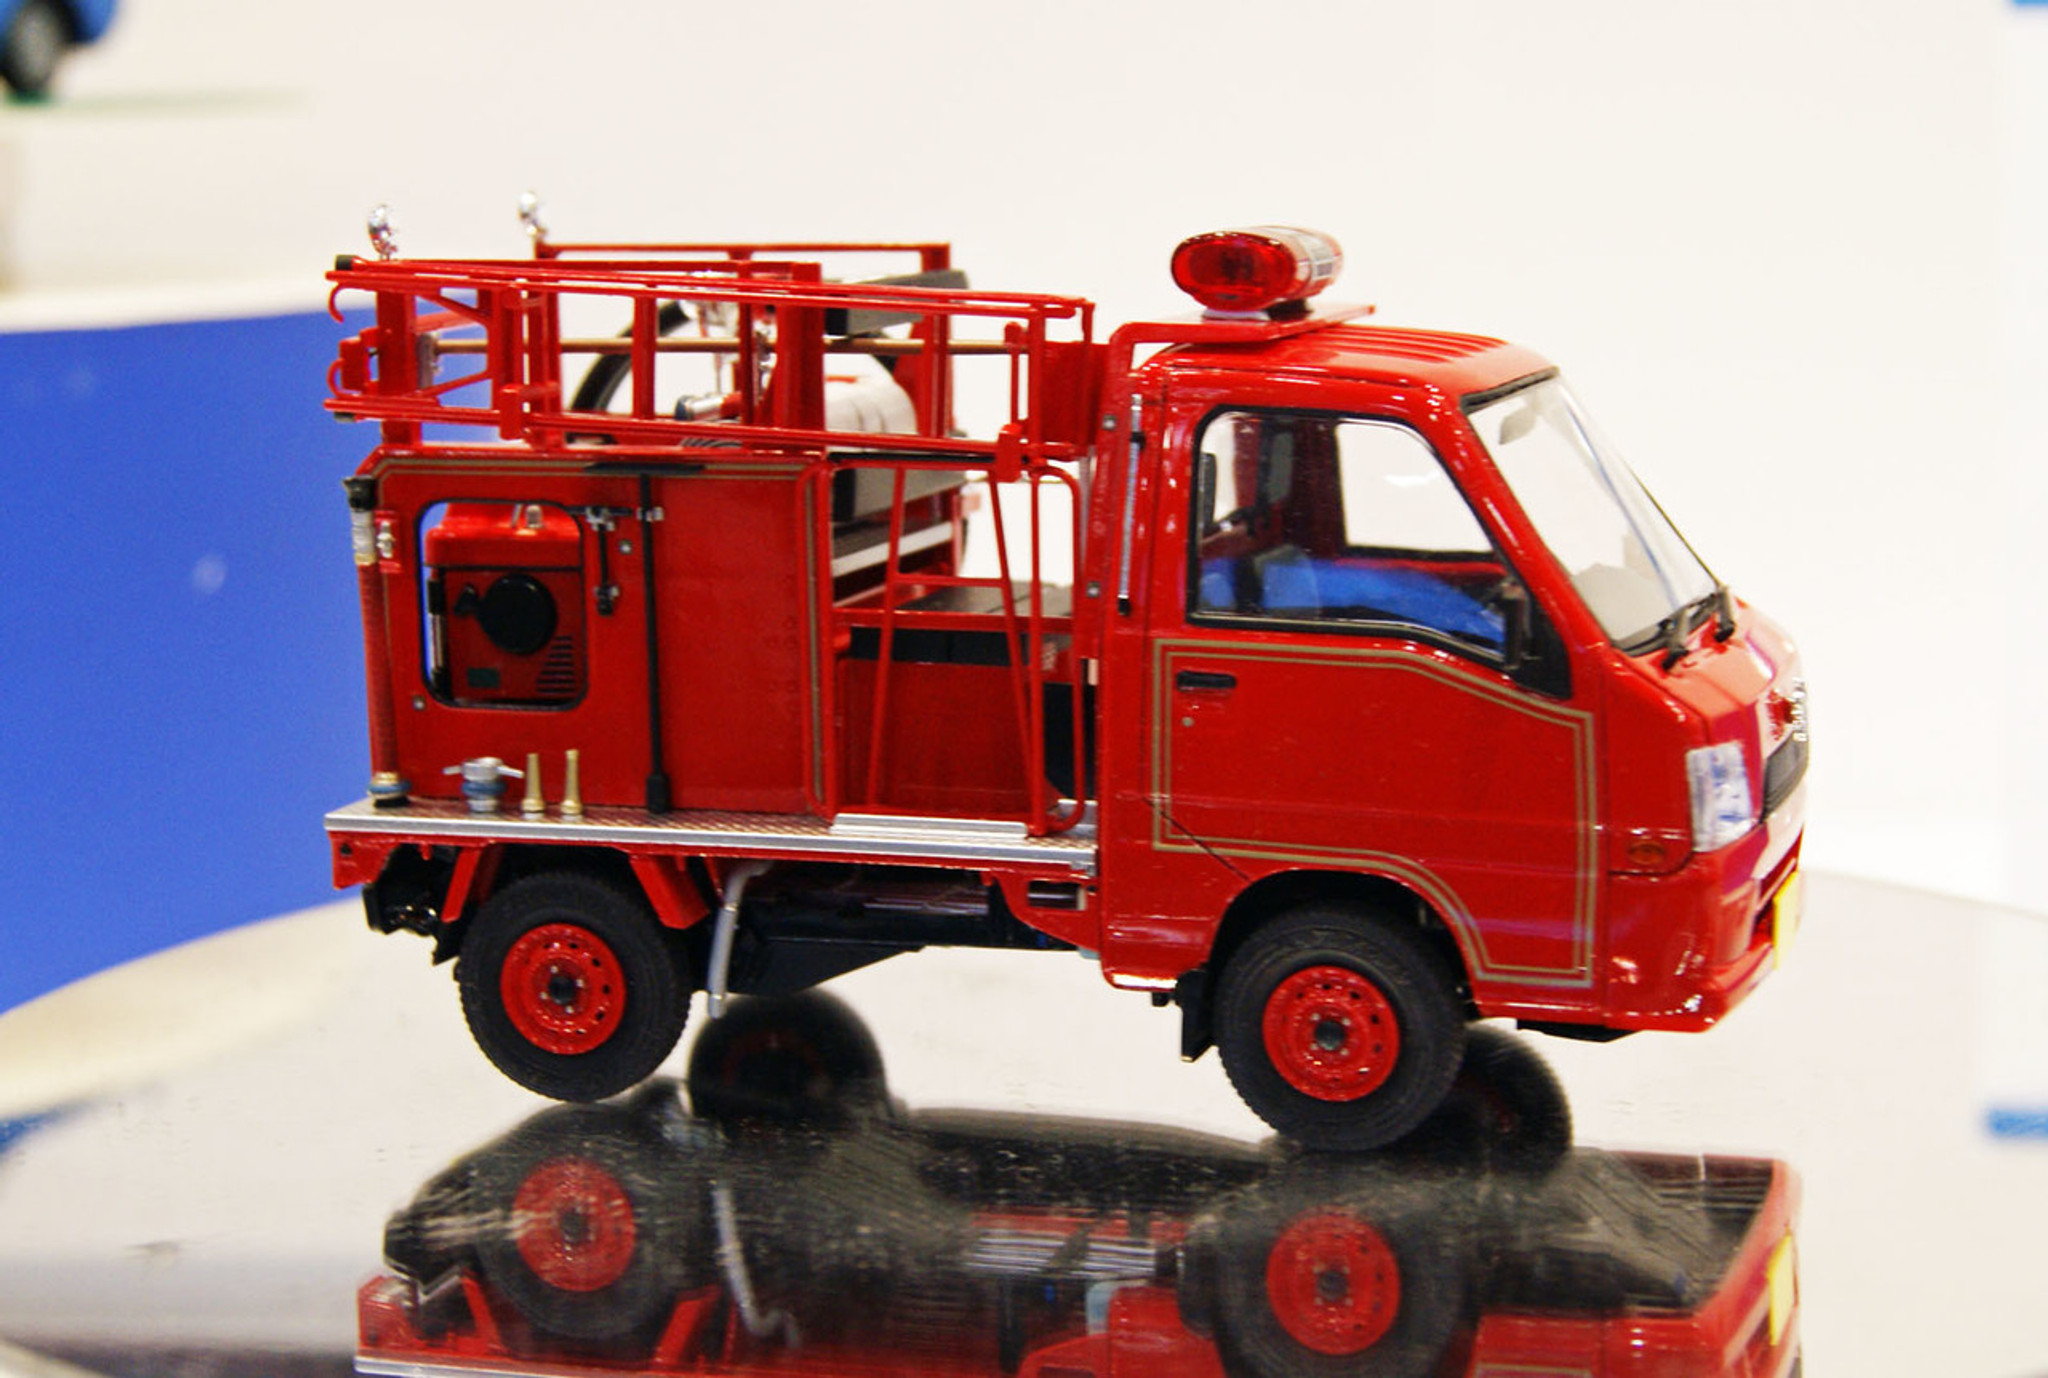 51429 50 Sambar Aoshima Model FiPlazajapan Car The Subaru dshrQCtx